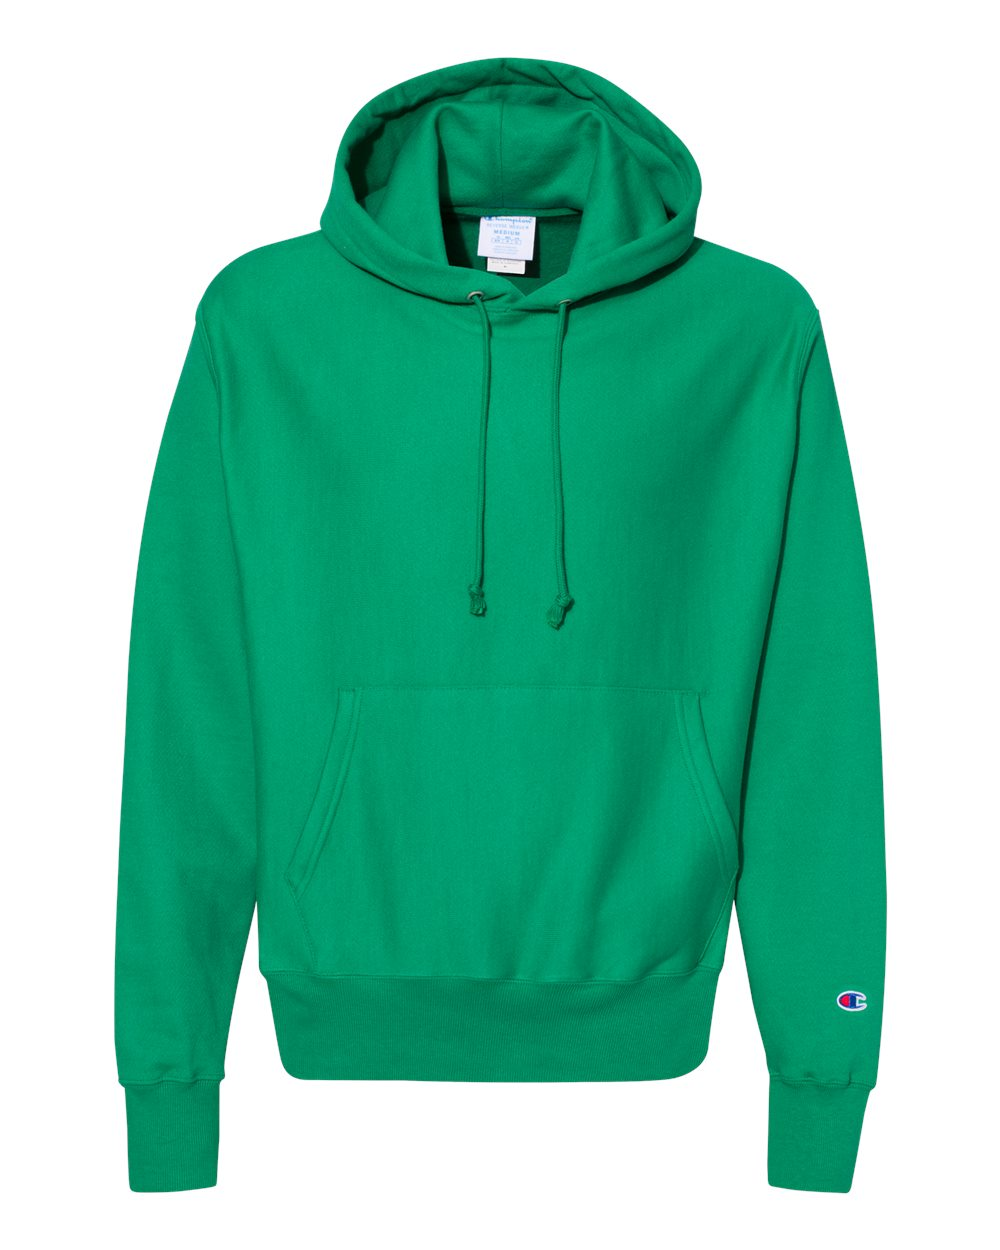 Champion-Mens-Reverse-Weave-Hooded-Pullover-Sweatshirt-S101-up-to-3XL thumbnail 27